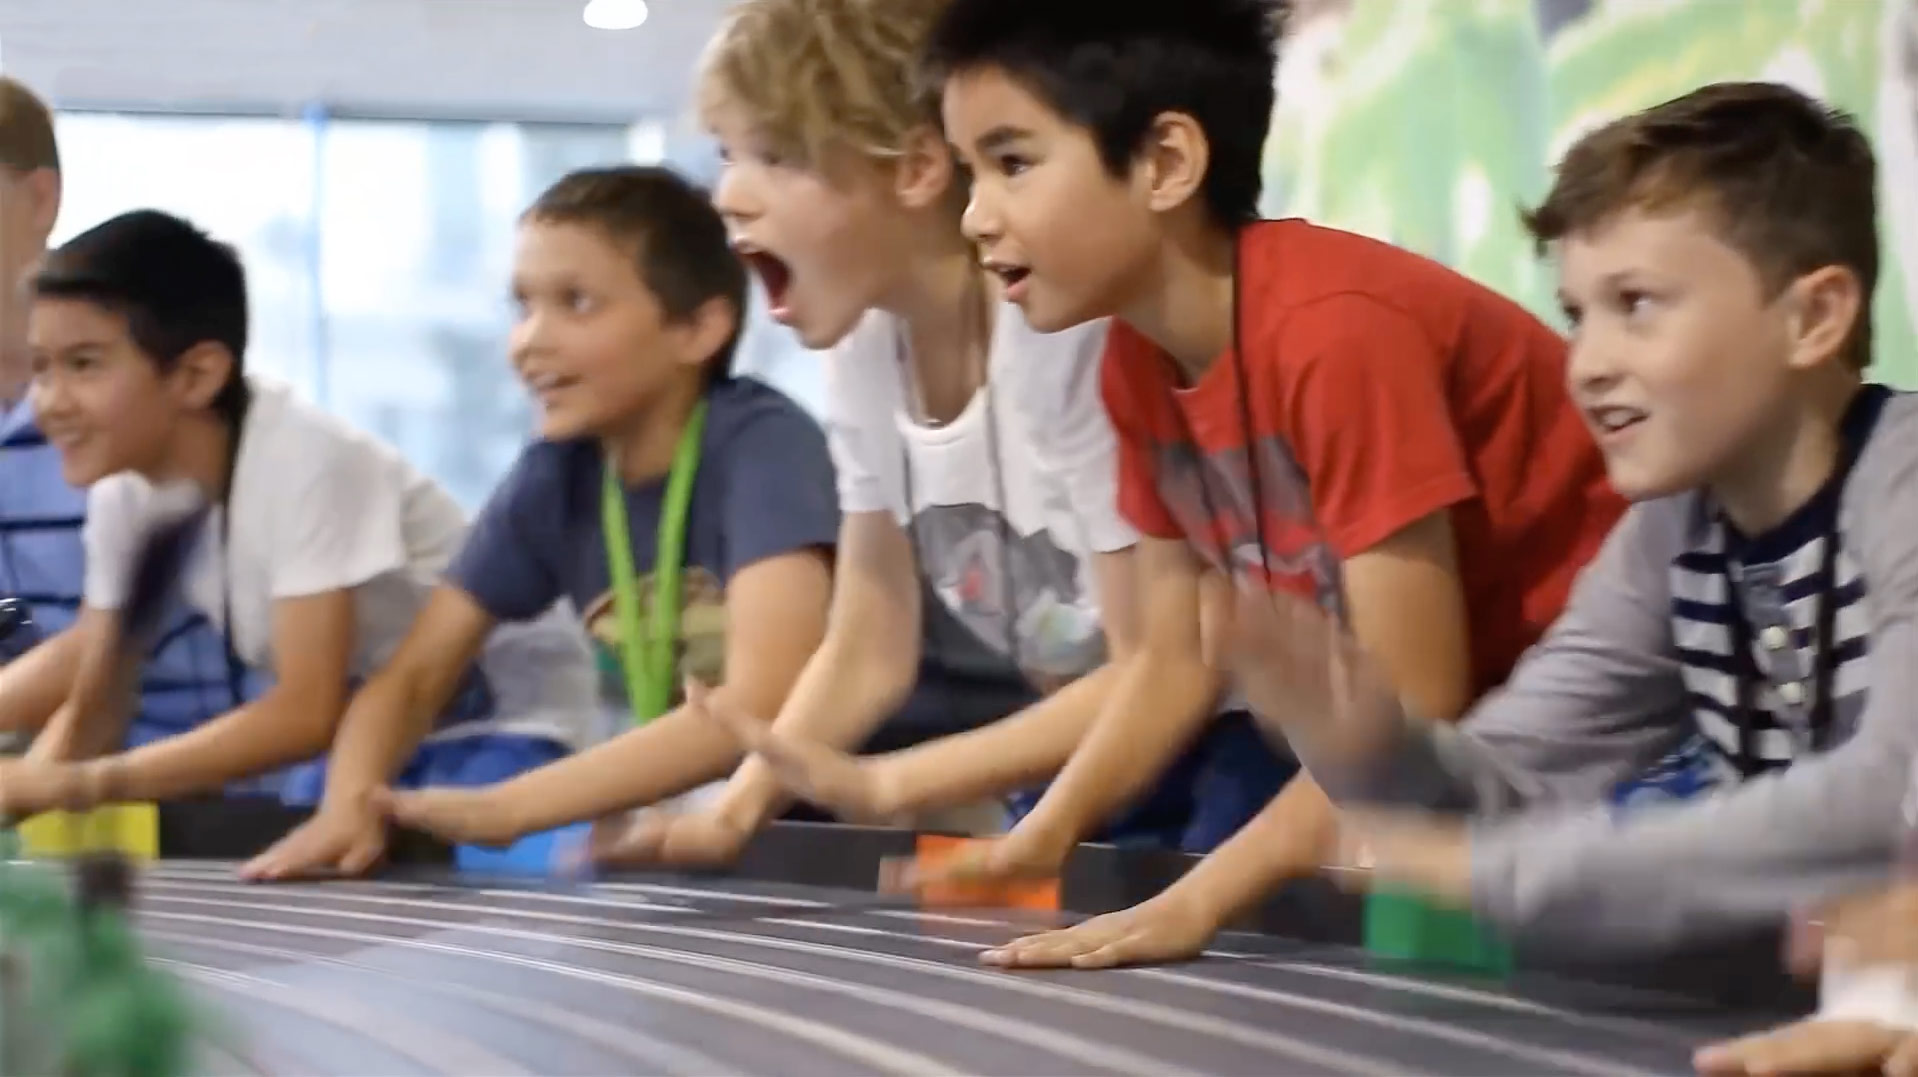 Race Party Boutique Slot Car Racing for All Ages in Melbourne